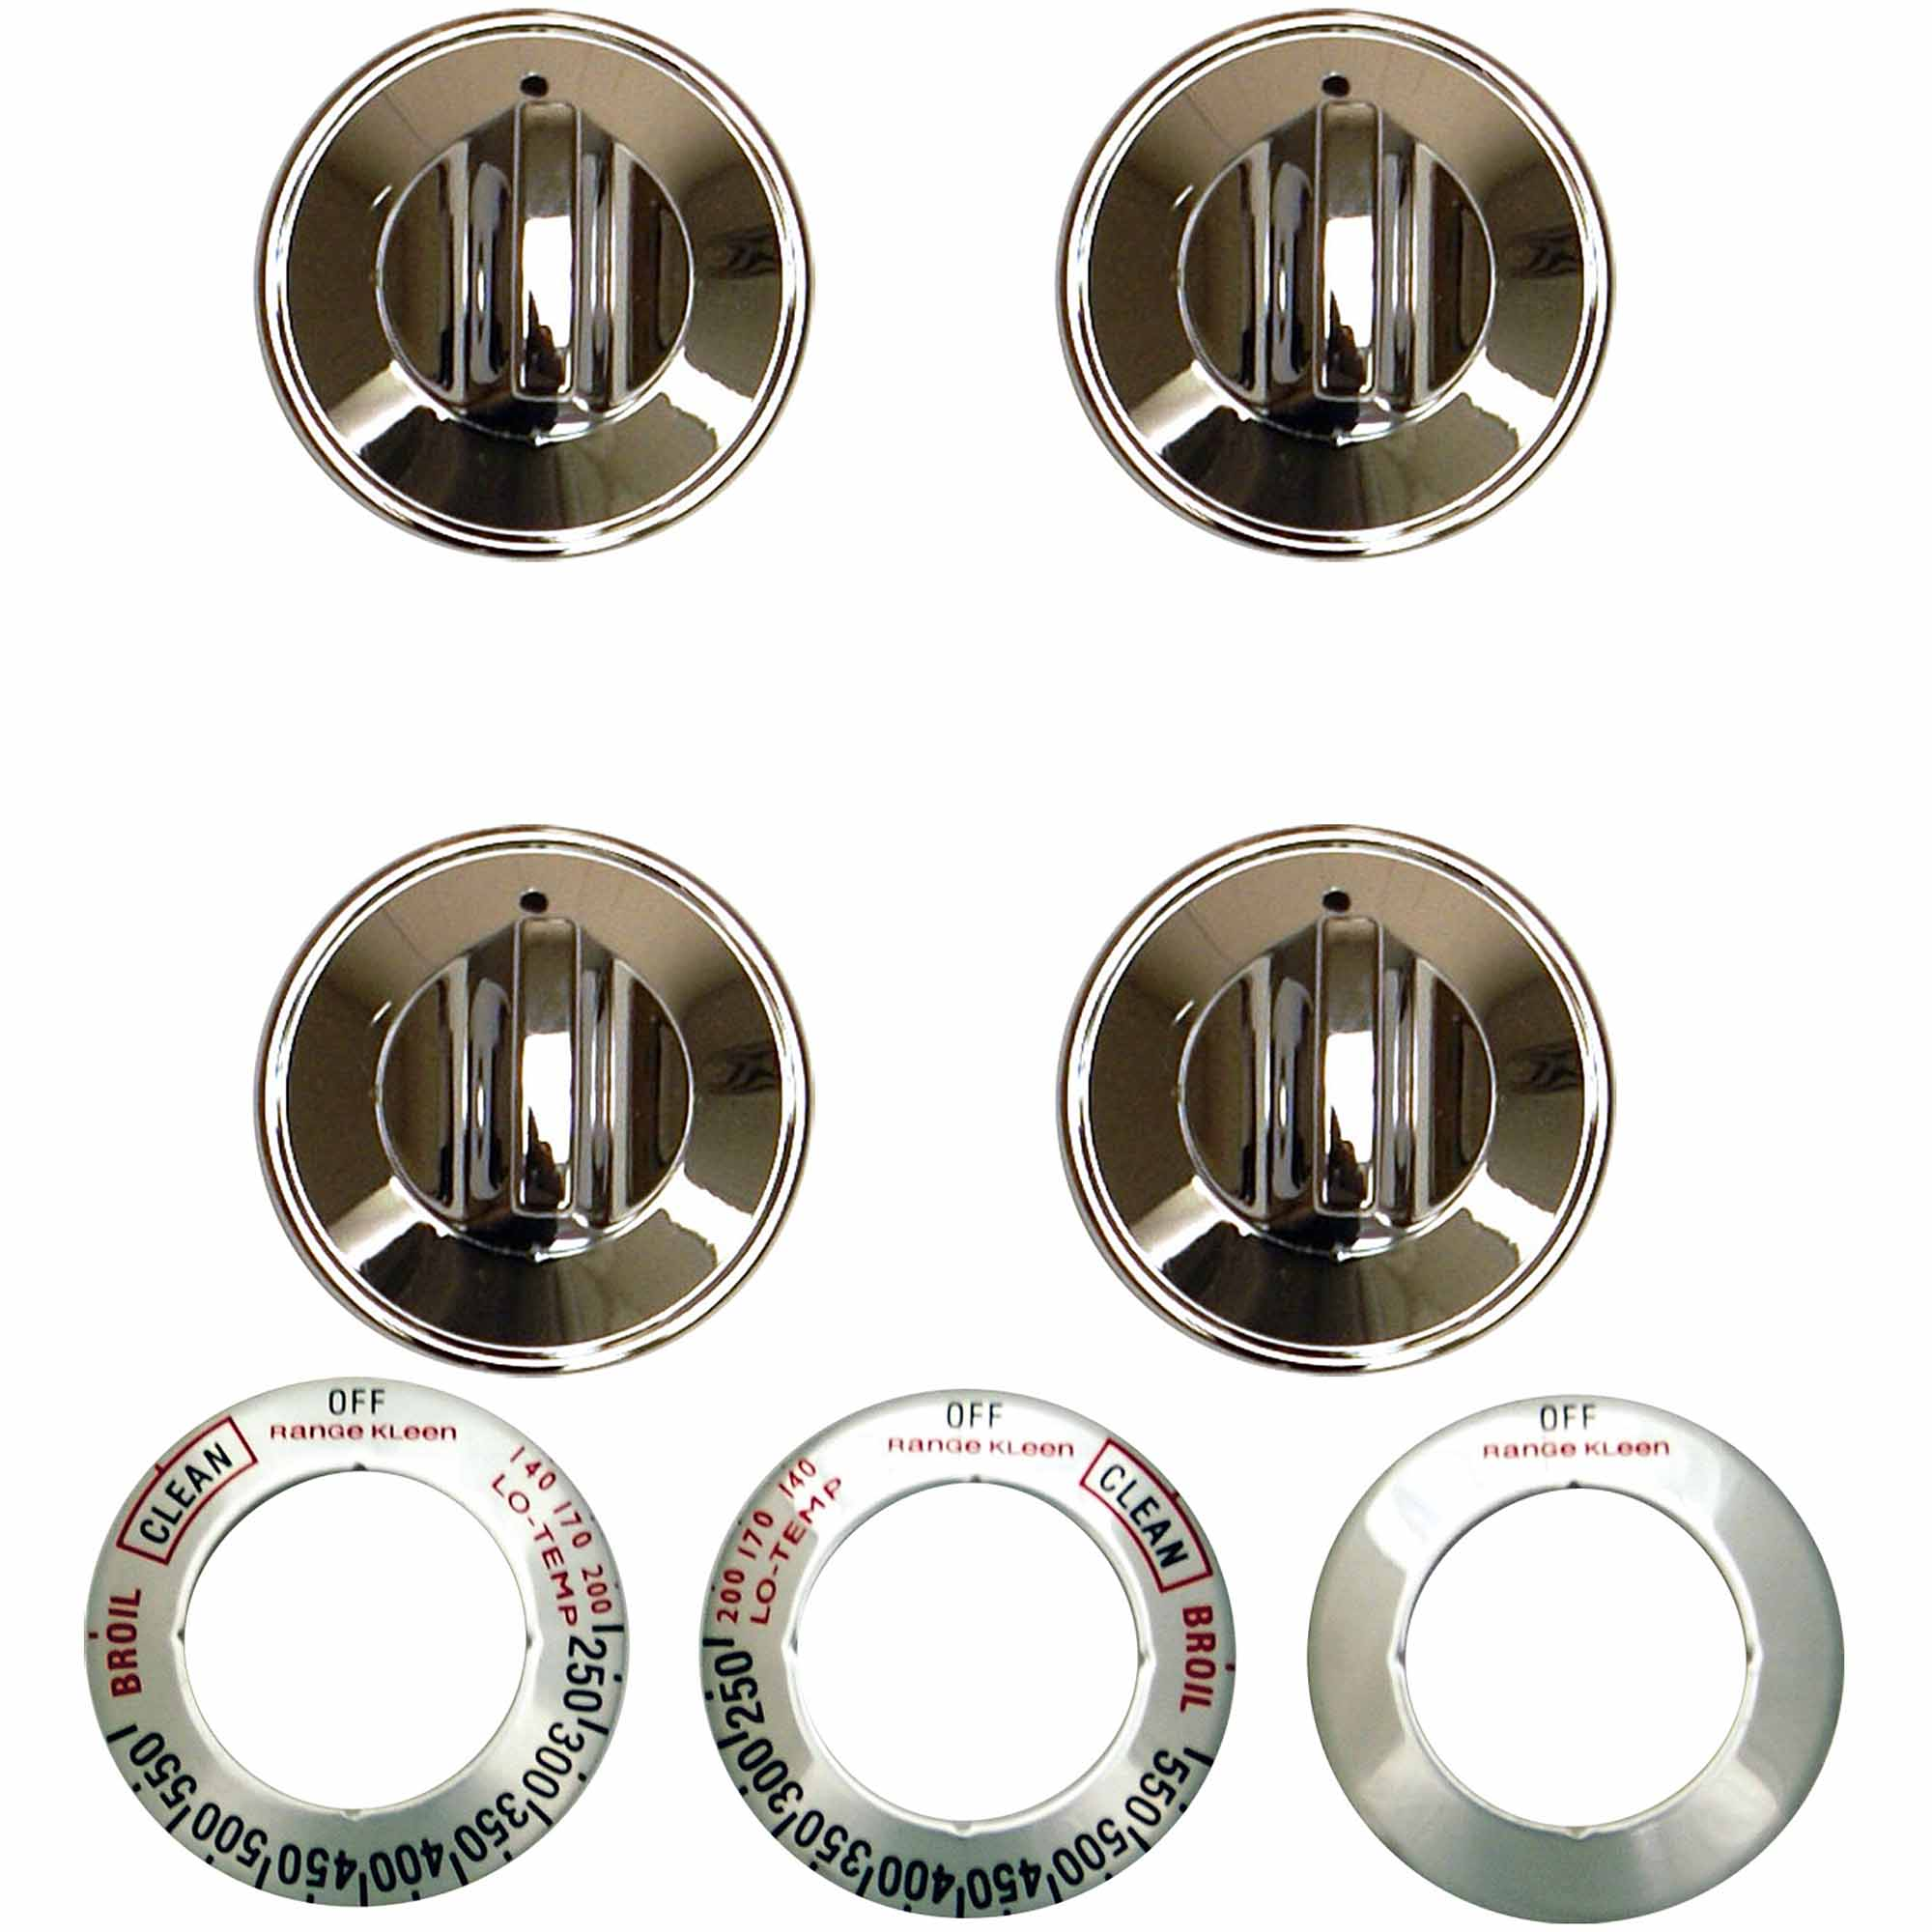 Range Kleen 16-Piece Replacement Knob Kit for 4 Knobs, Gas Ranges, Chrome